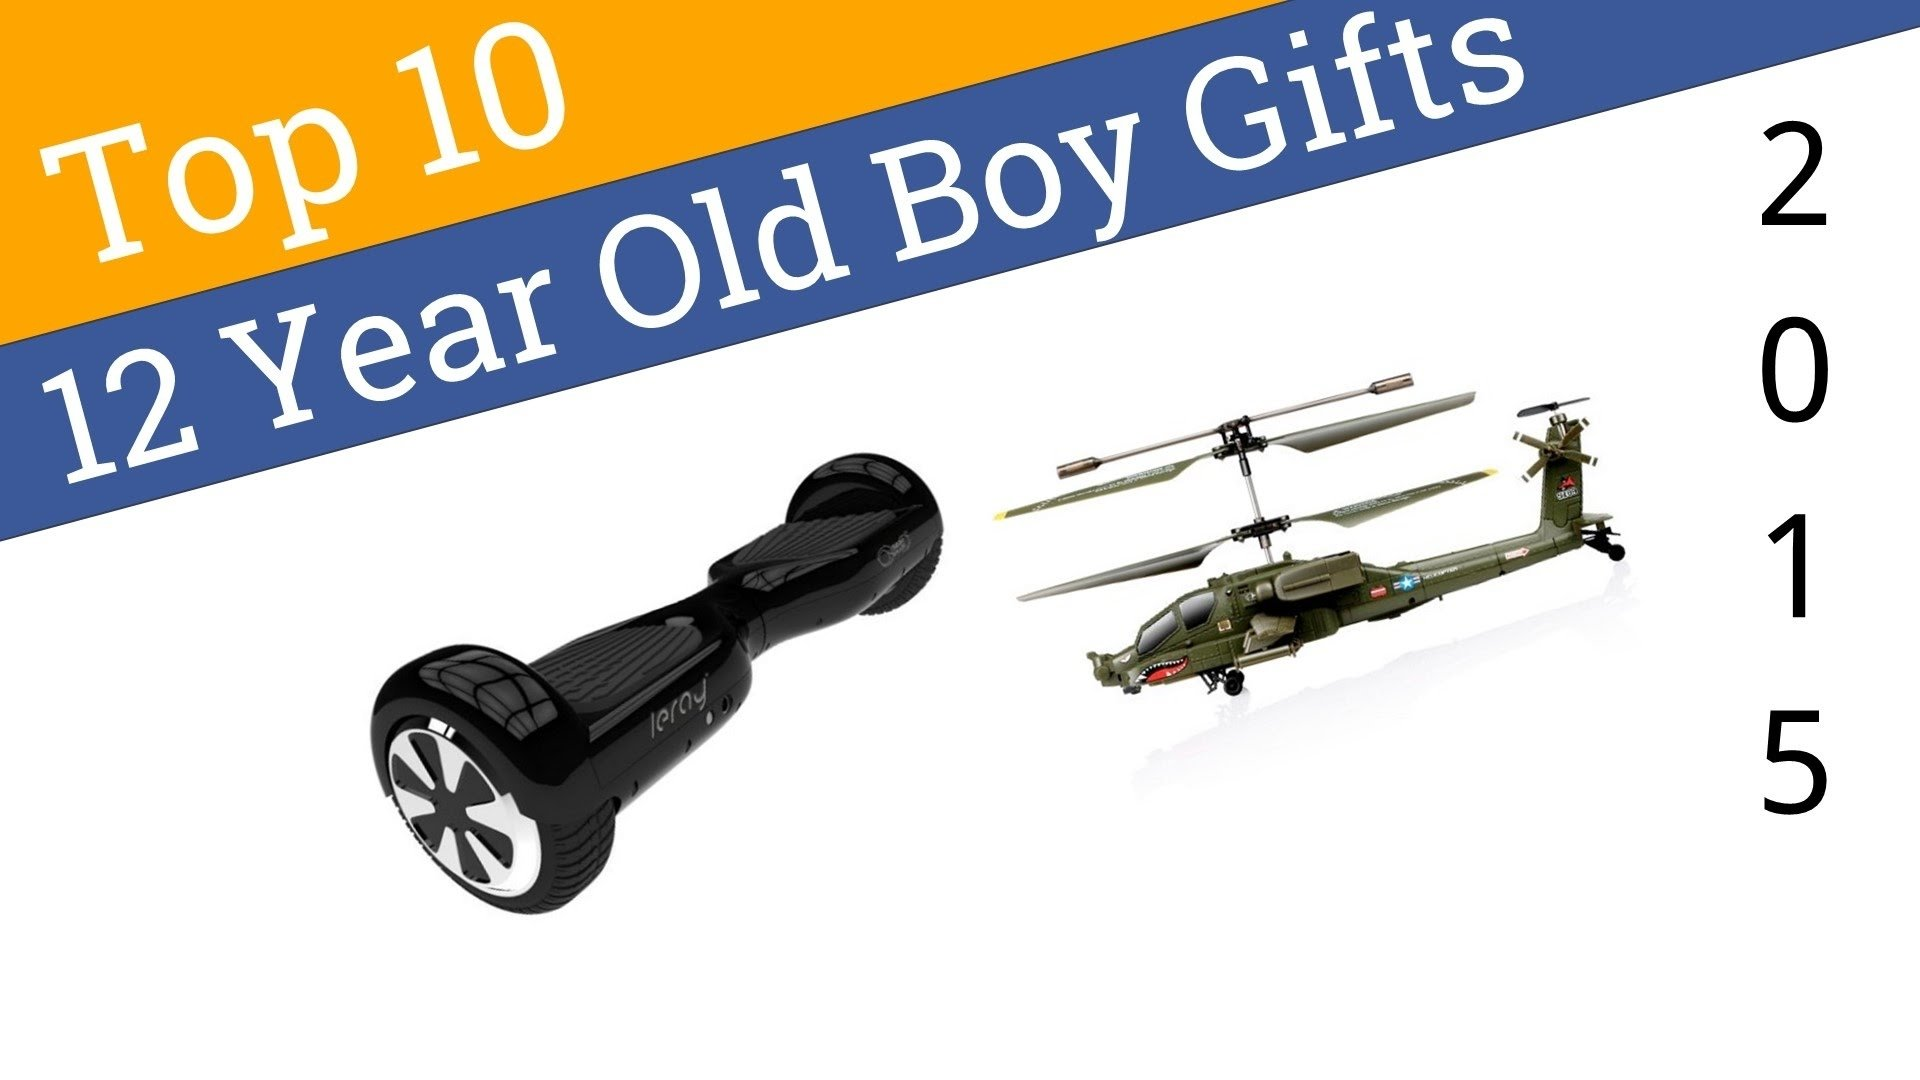 10 wonderful birthday gift ideas for 12 year old boy